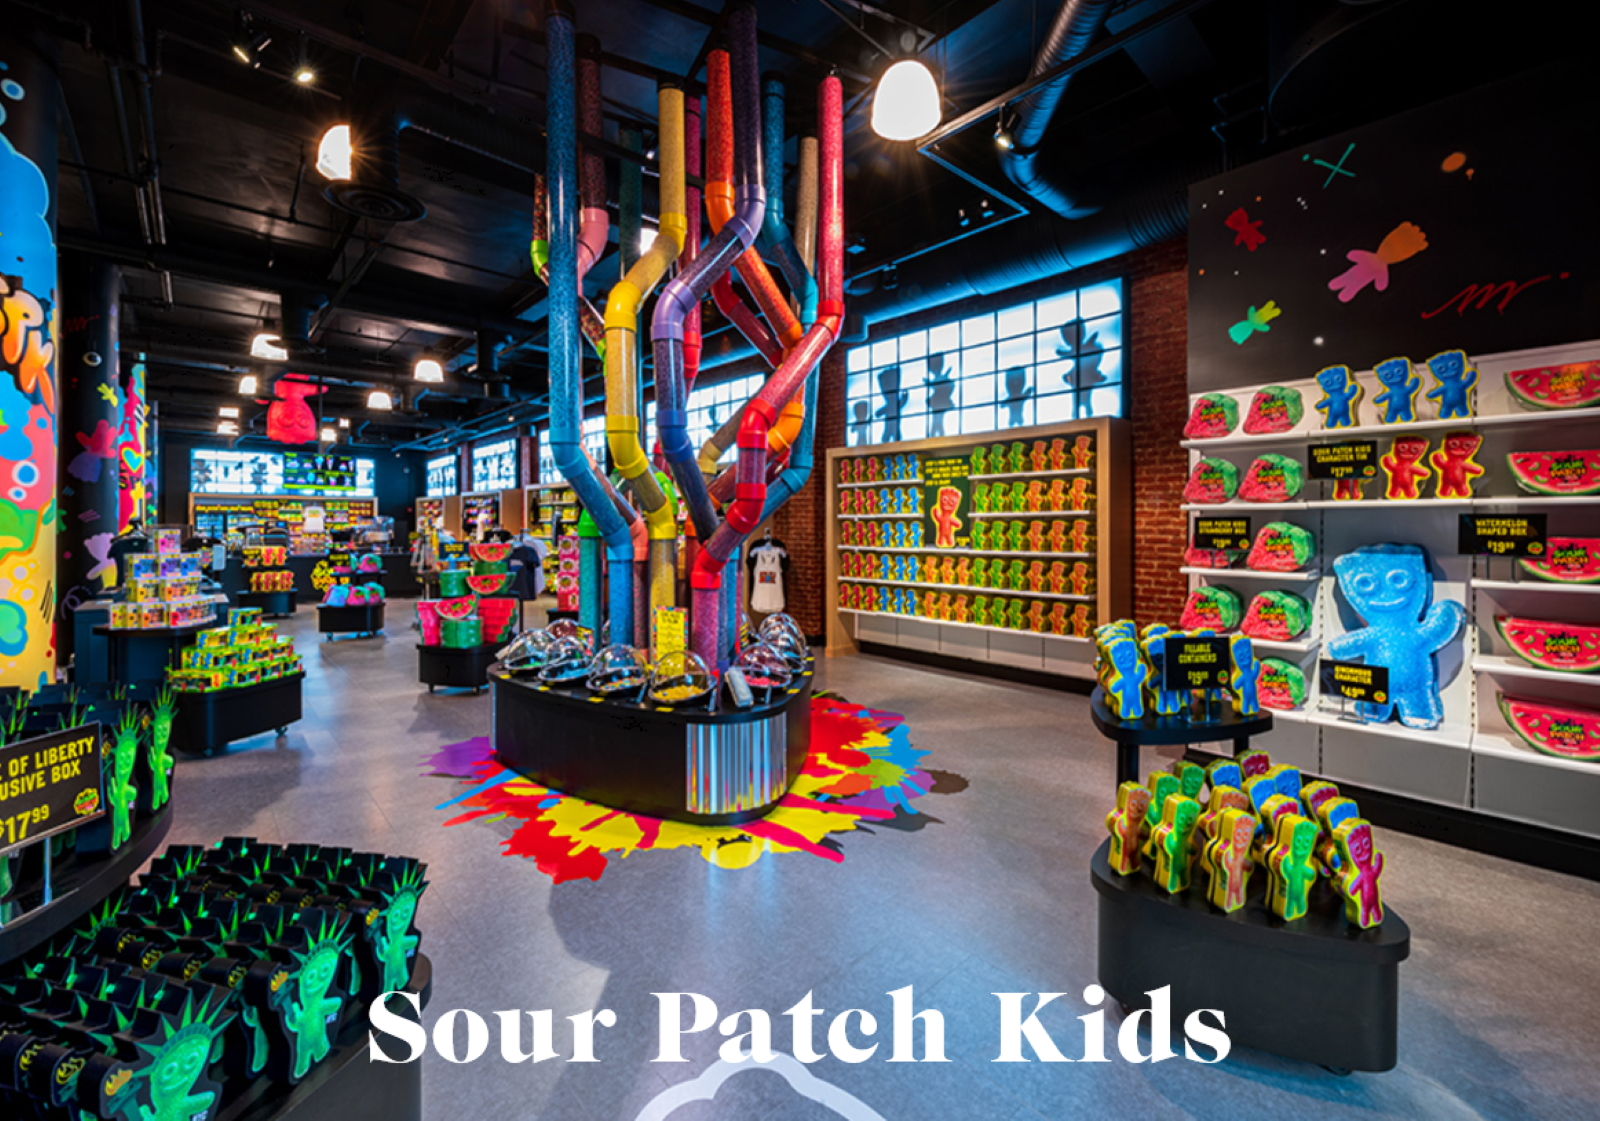 Sour patch kids retail tour new york missions mmm 0